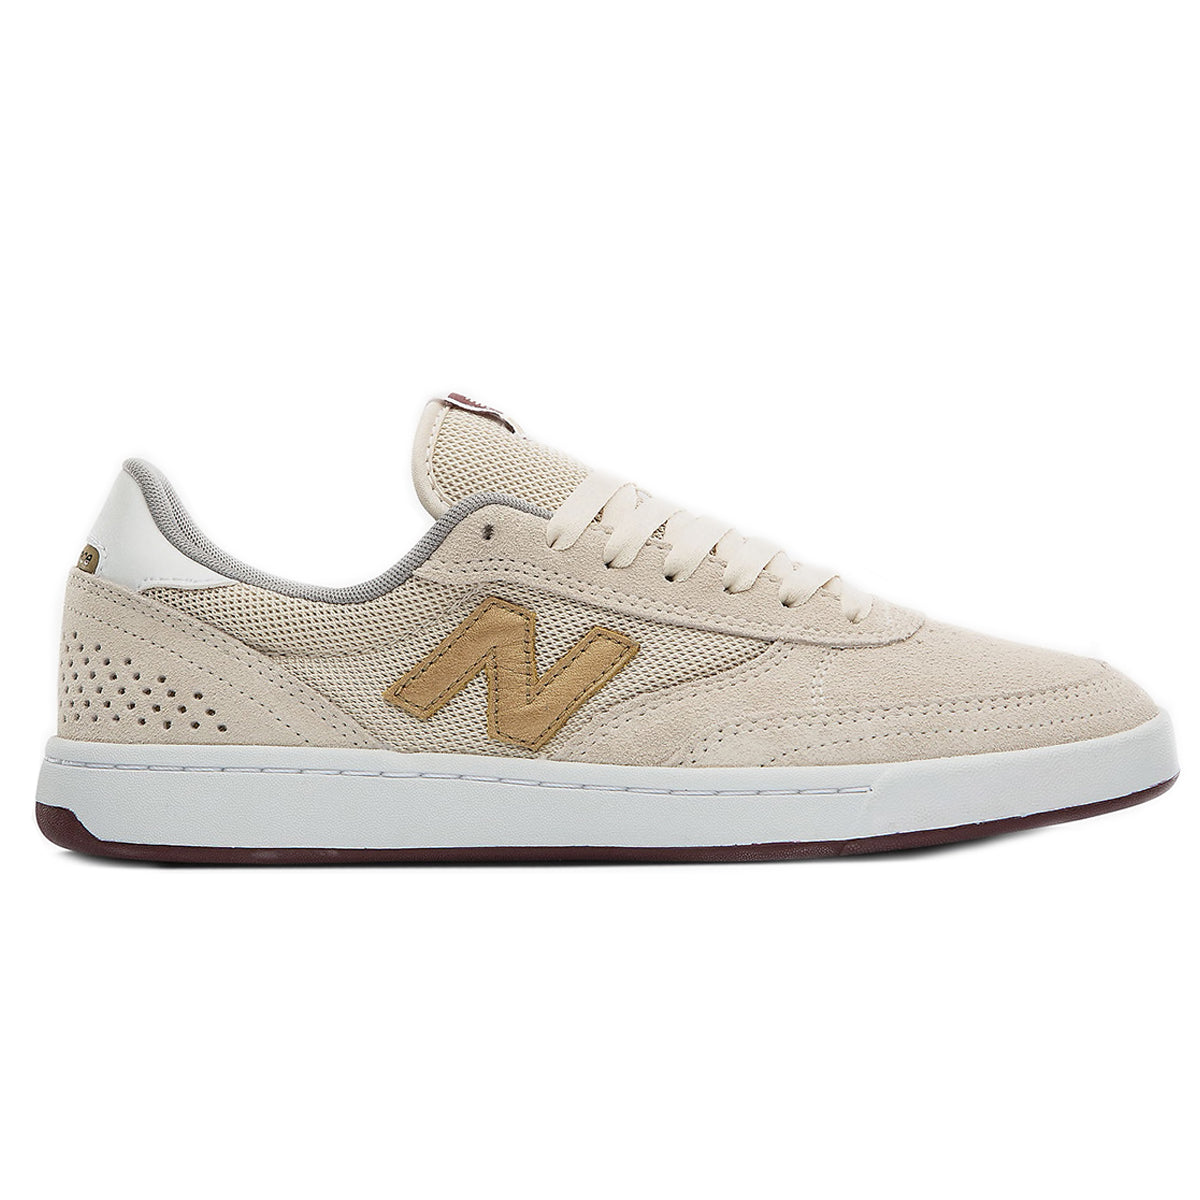 New Balance 440 - Bone/Gold/Burgundy | Underground Skate Shop